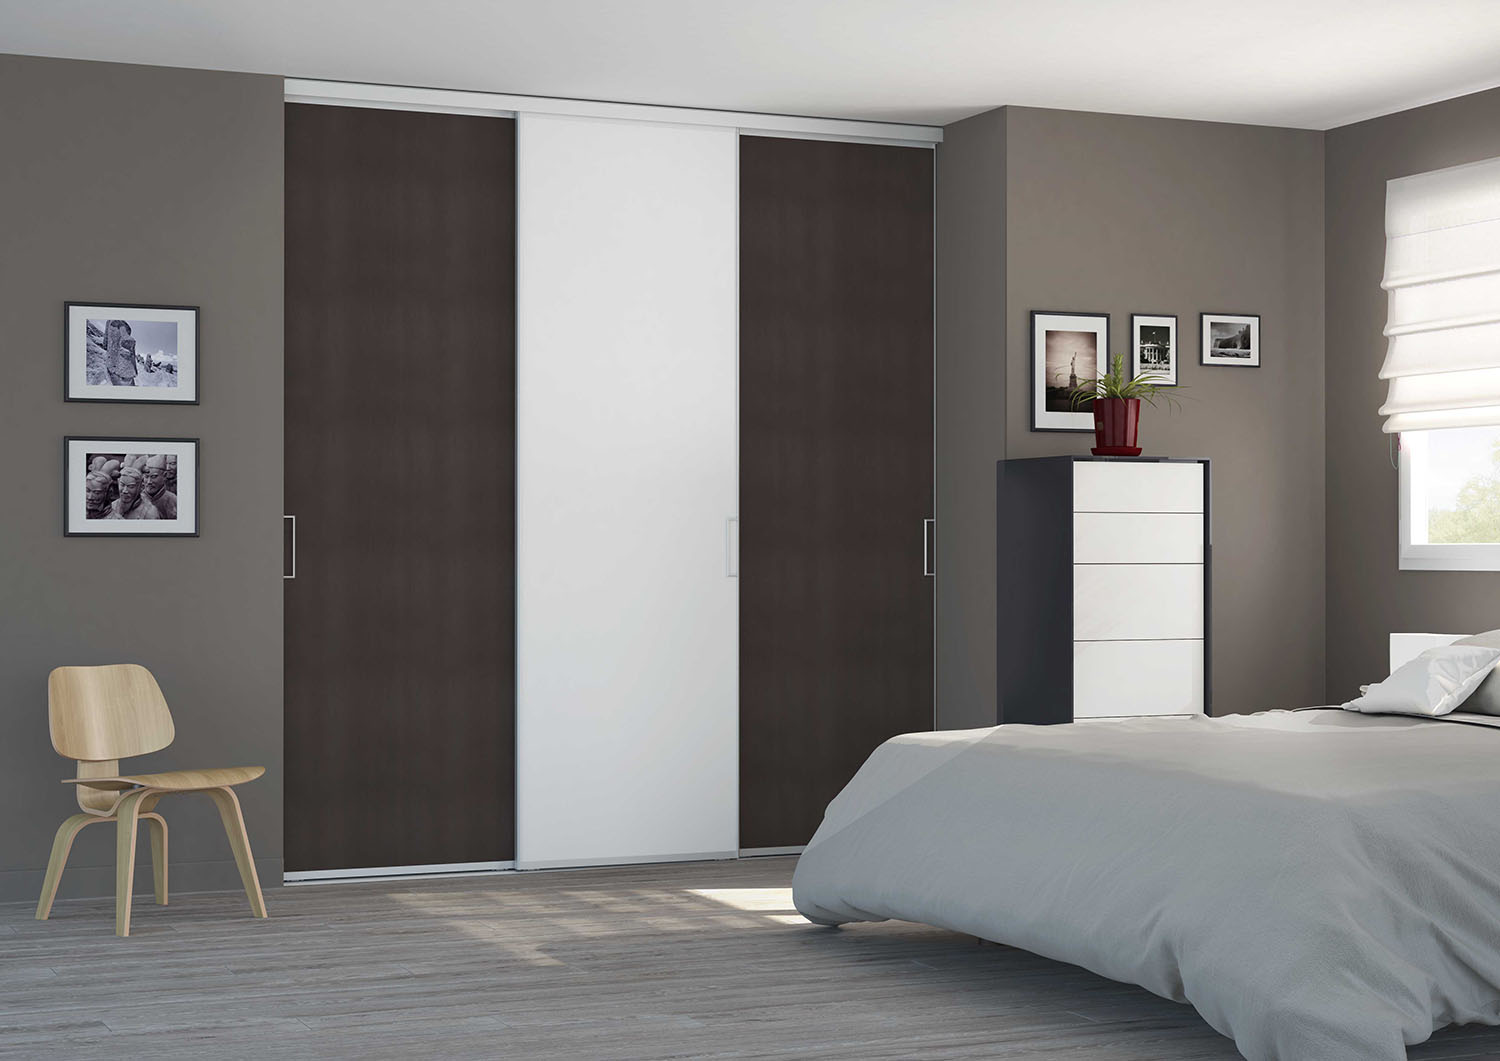 portes de placard coulissantes de chambre sur mesure. Black Bedroom Furniture Sets. Home Design Ideas